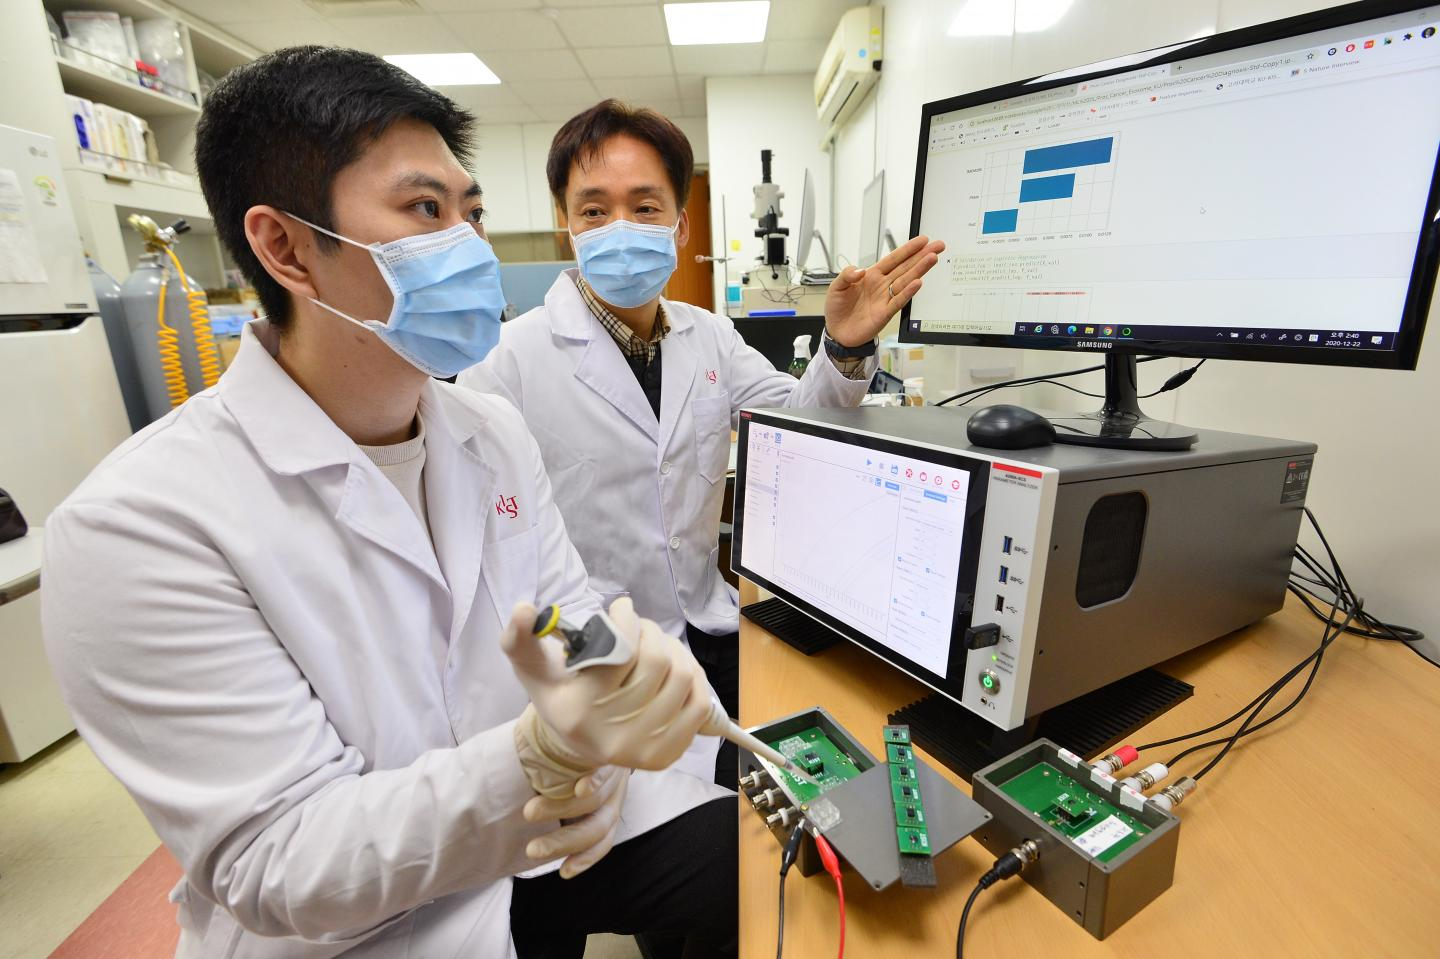 Korean researchers say prostate cancer diagnosis can be done using AI and urine